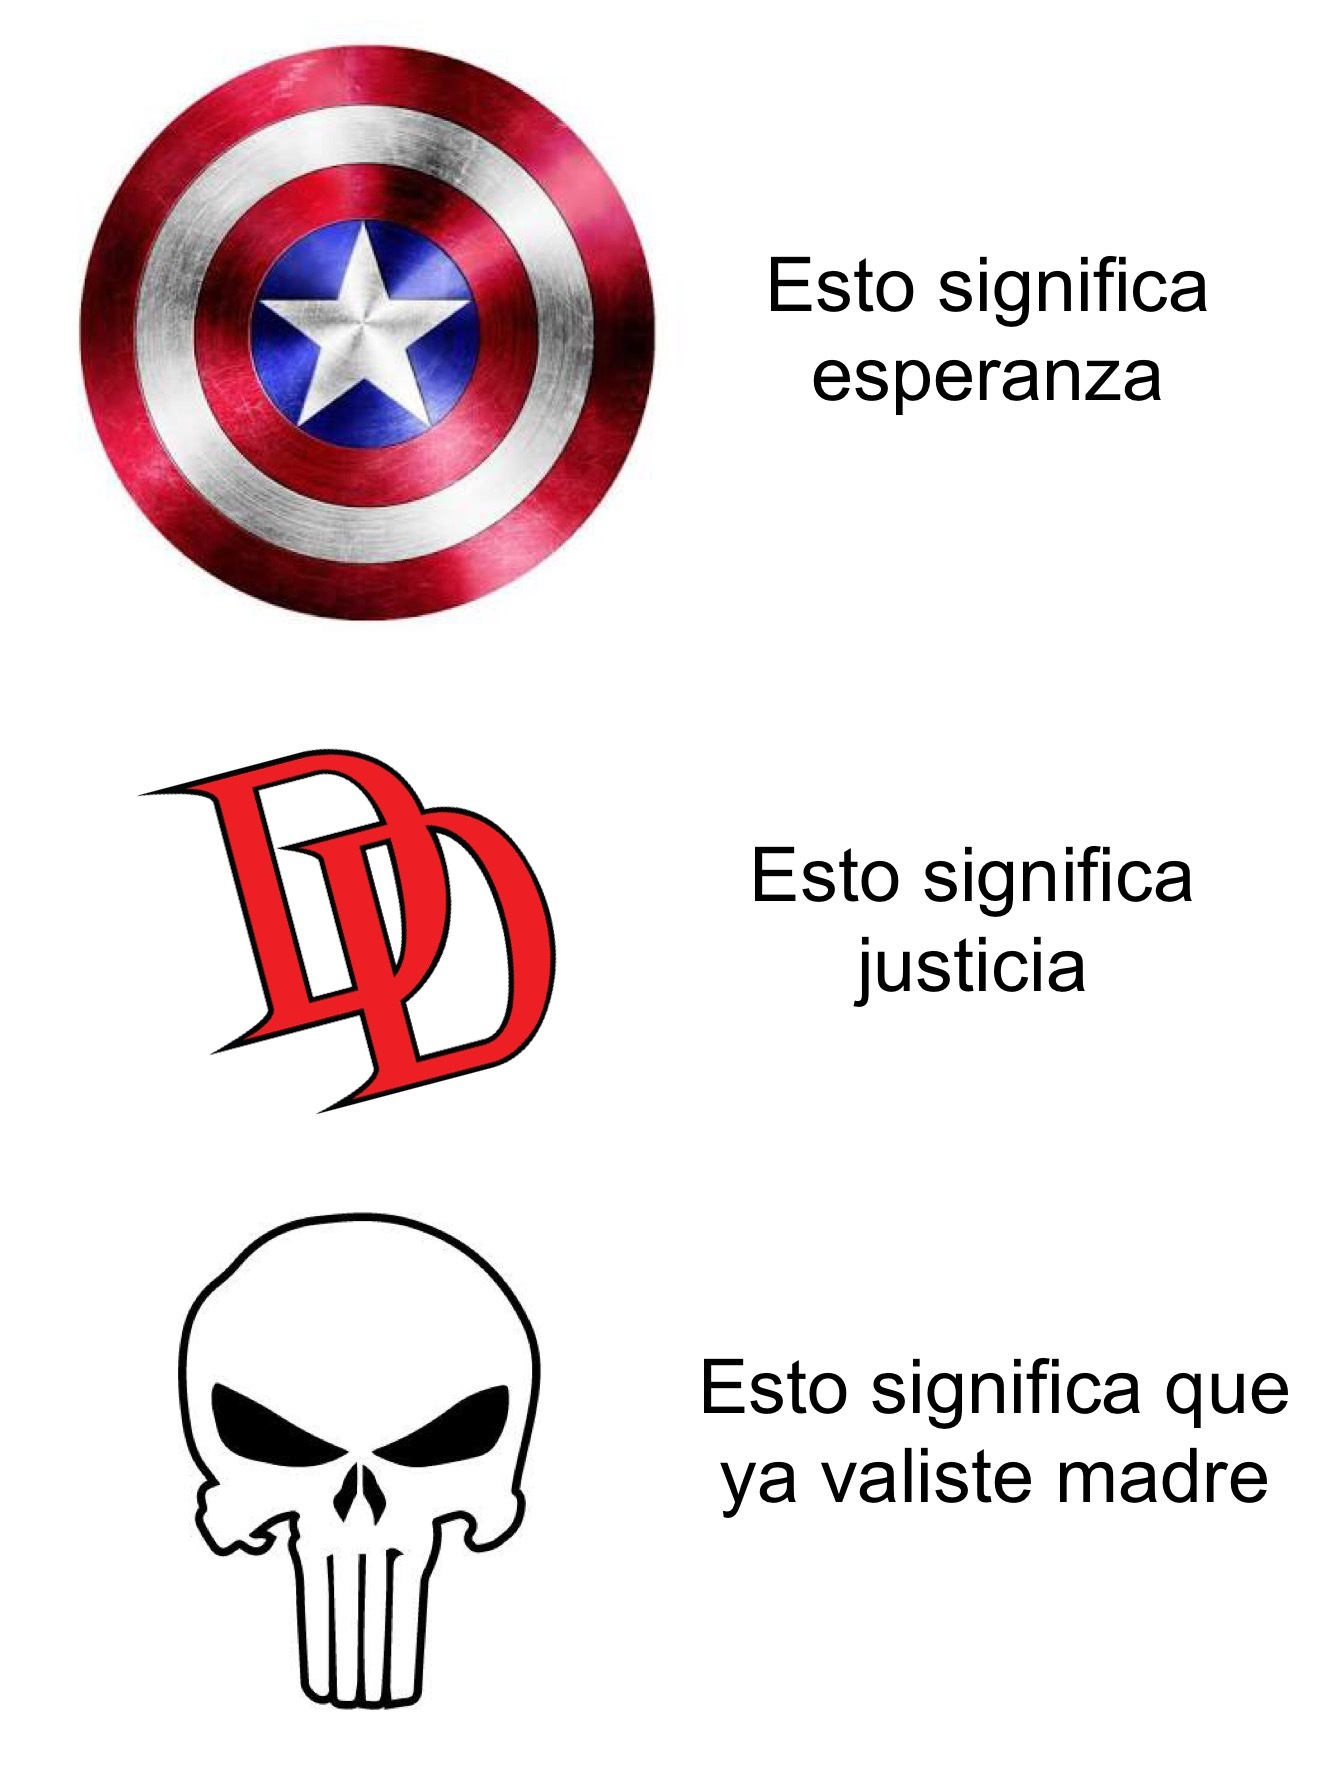 Ya valiste punisher - meme